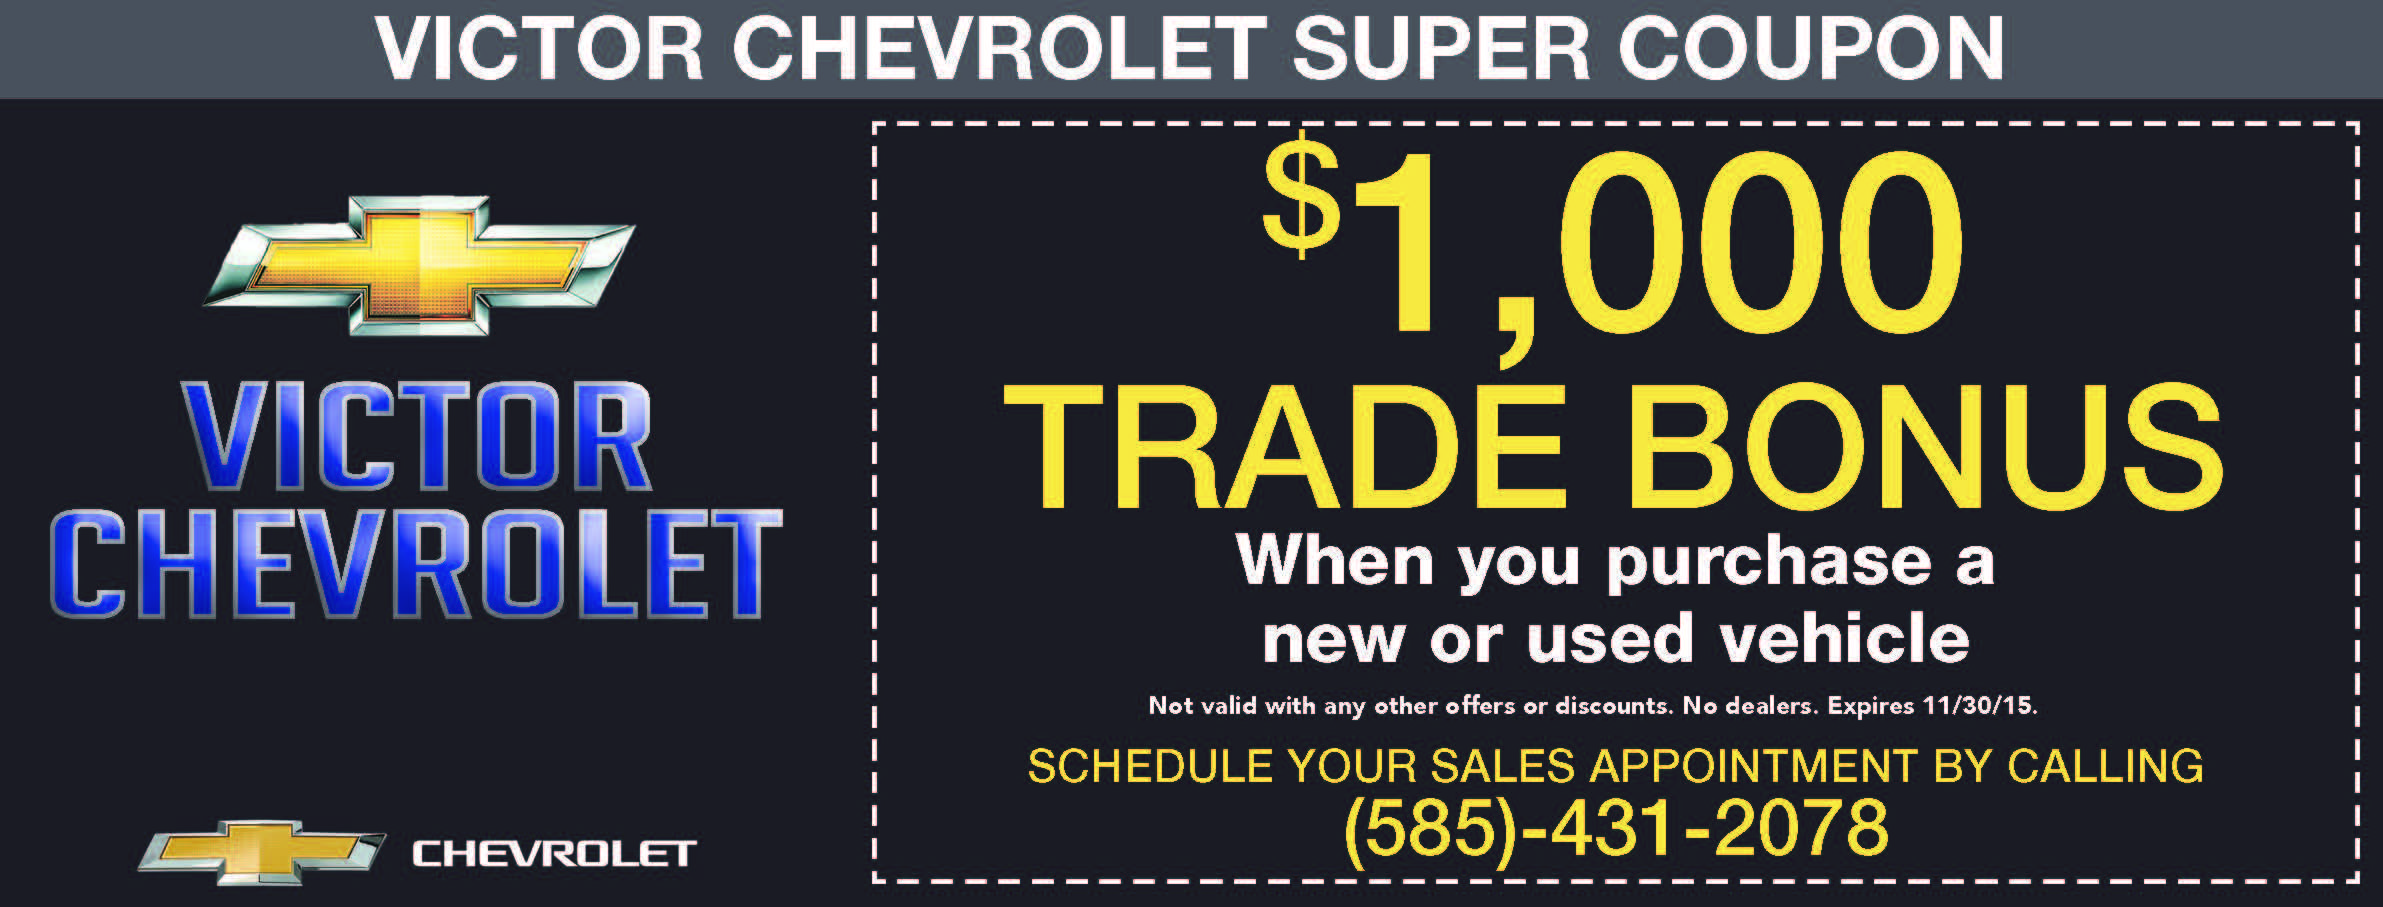 pierce dyer fort used service cars deals discounts chevrolet specials